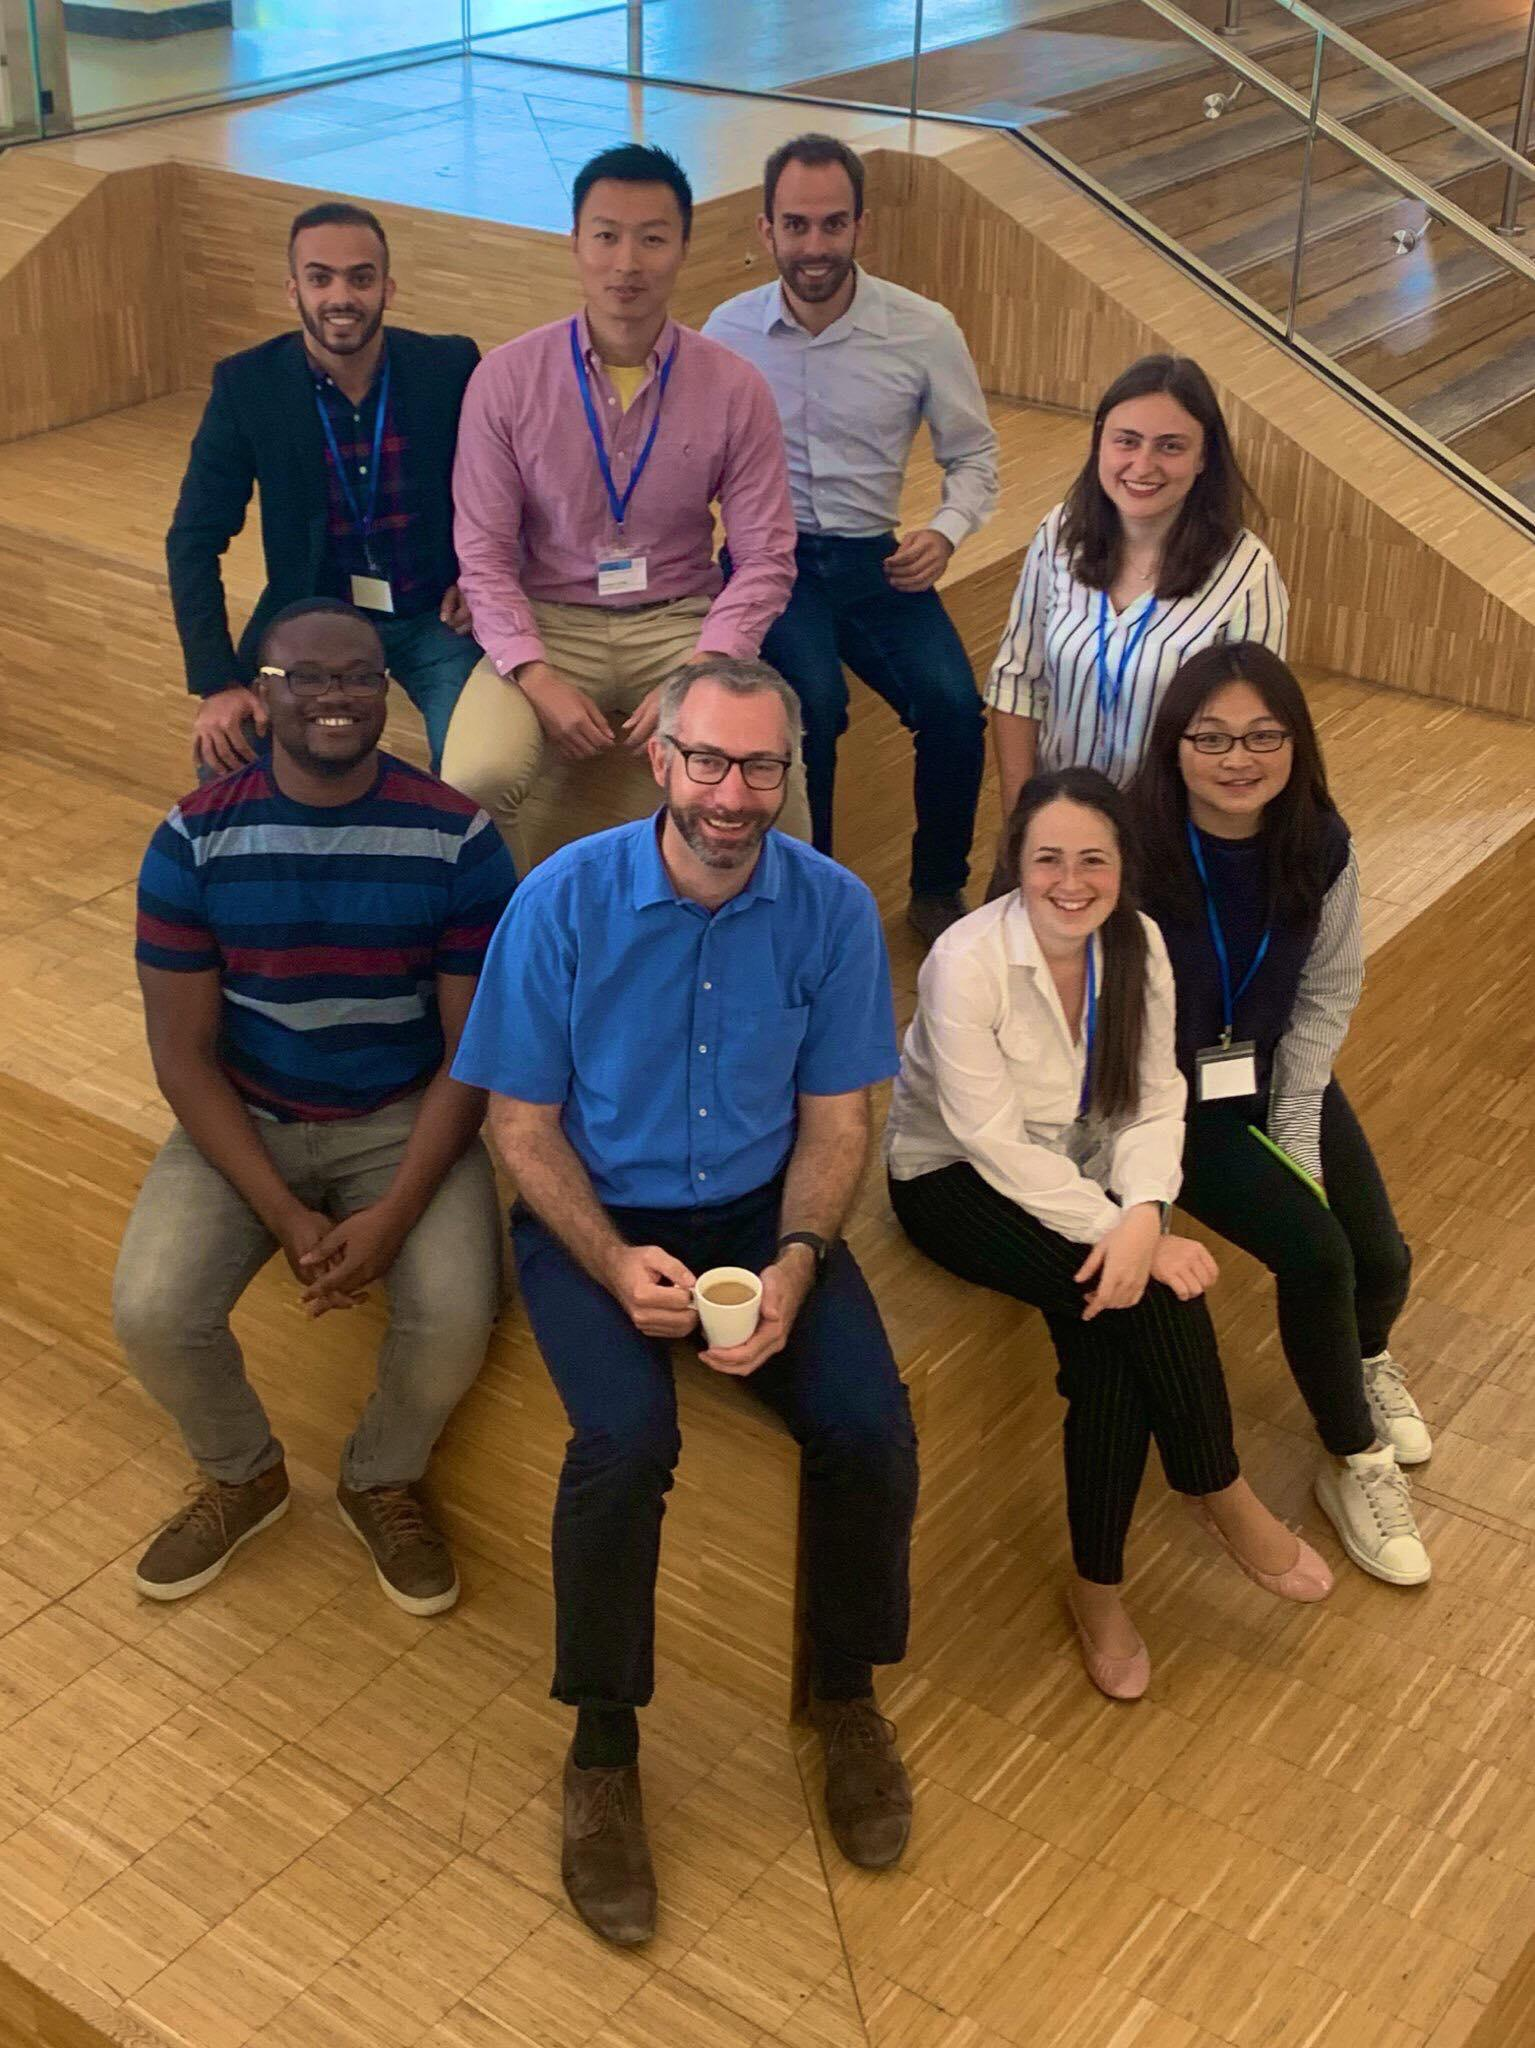 The latest version of the TAG photo taken at PSSRC2019. Mohammed, Ray, Adam, Johanna, Prince, Axel, Talia, and Qi.